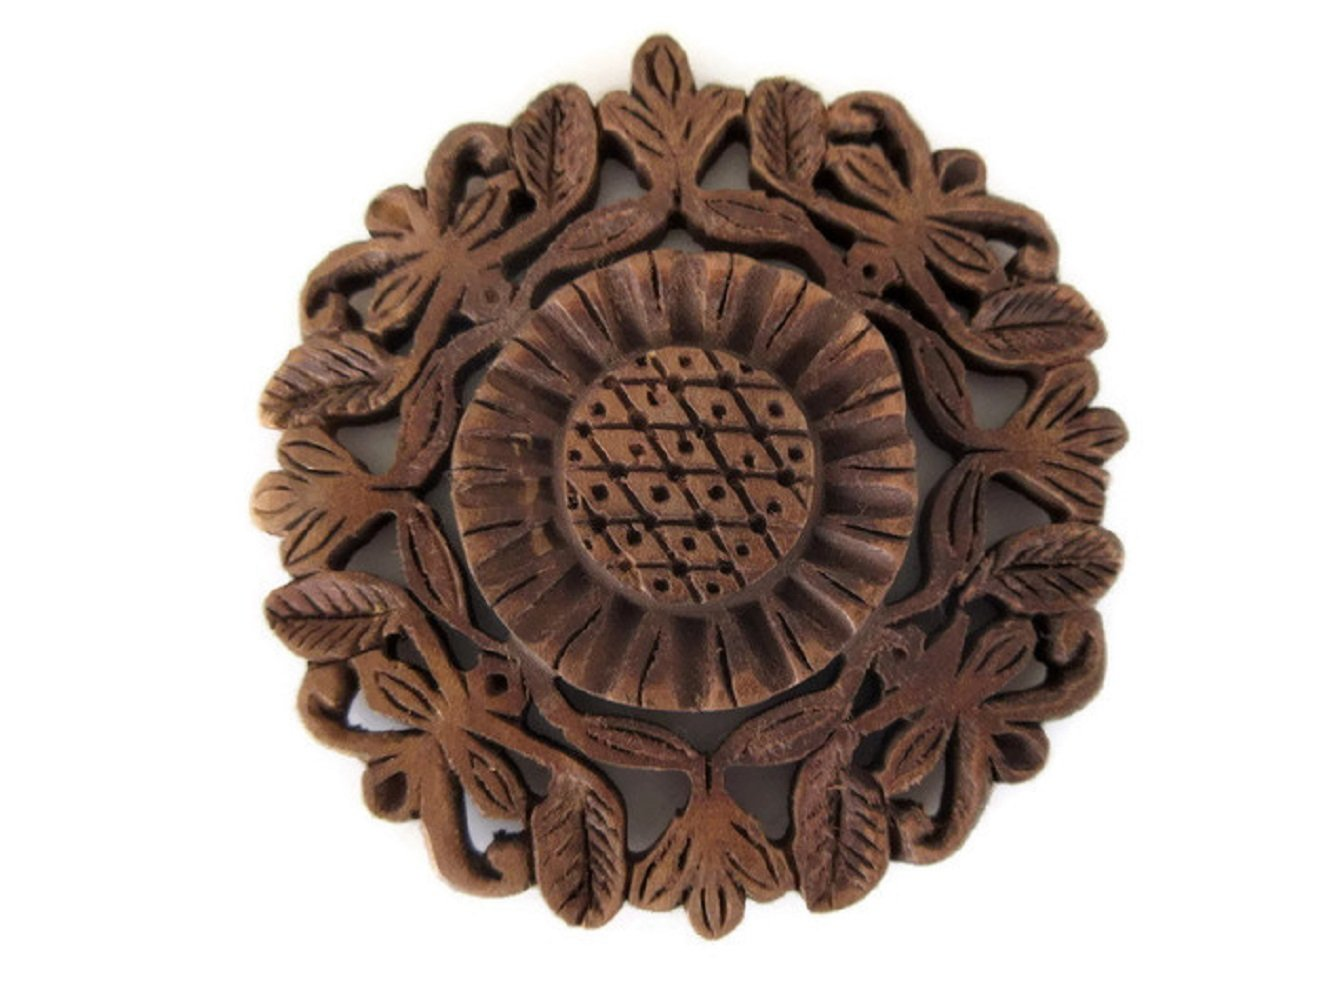 Hand Carved Wooden Sun Flower Pendant, Handmade Jharokha Pendant, Wood Art And Craft Framing Supplies Jewelry, GDS1046/7 (20 Pieces)